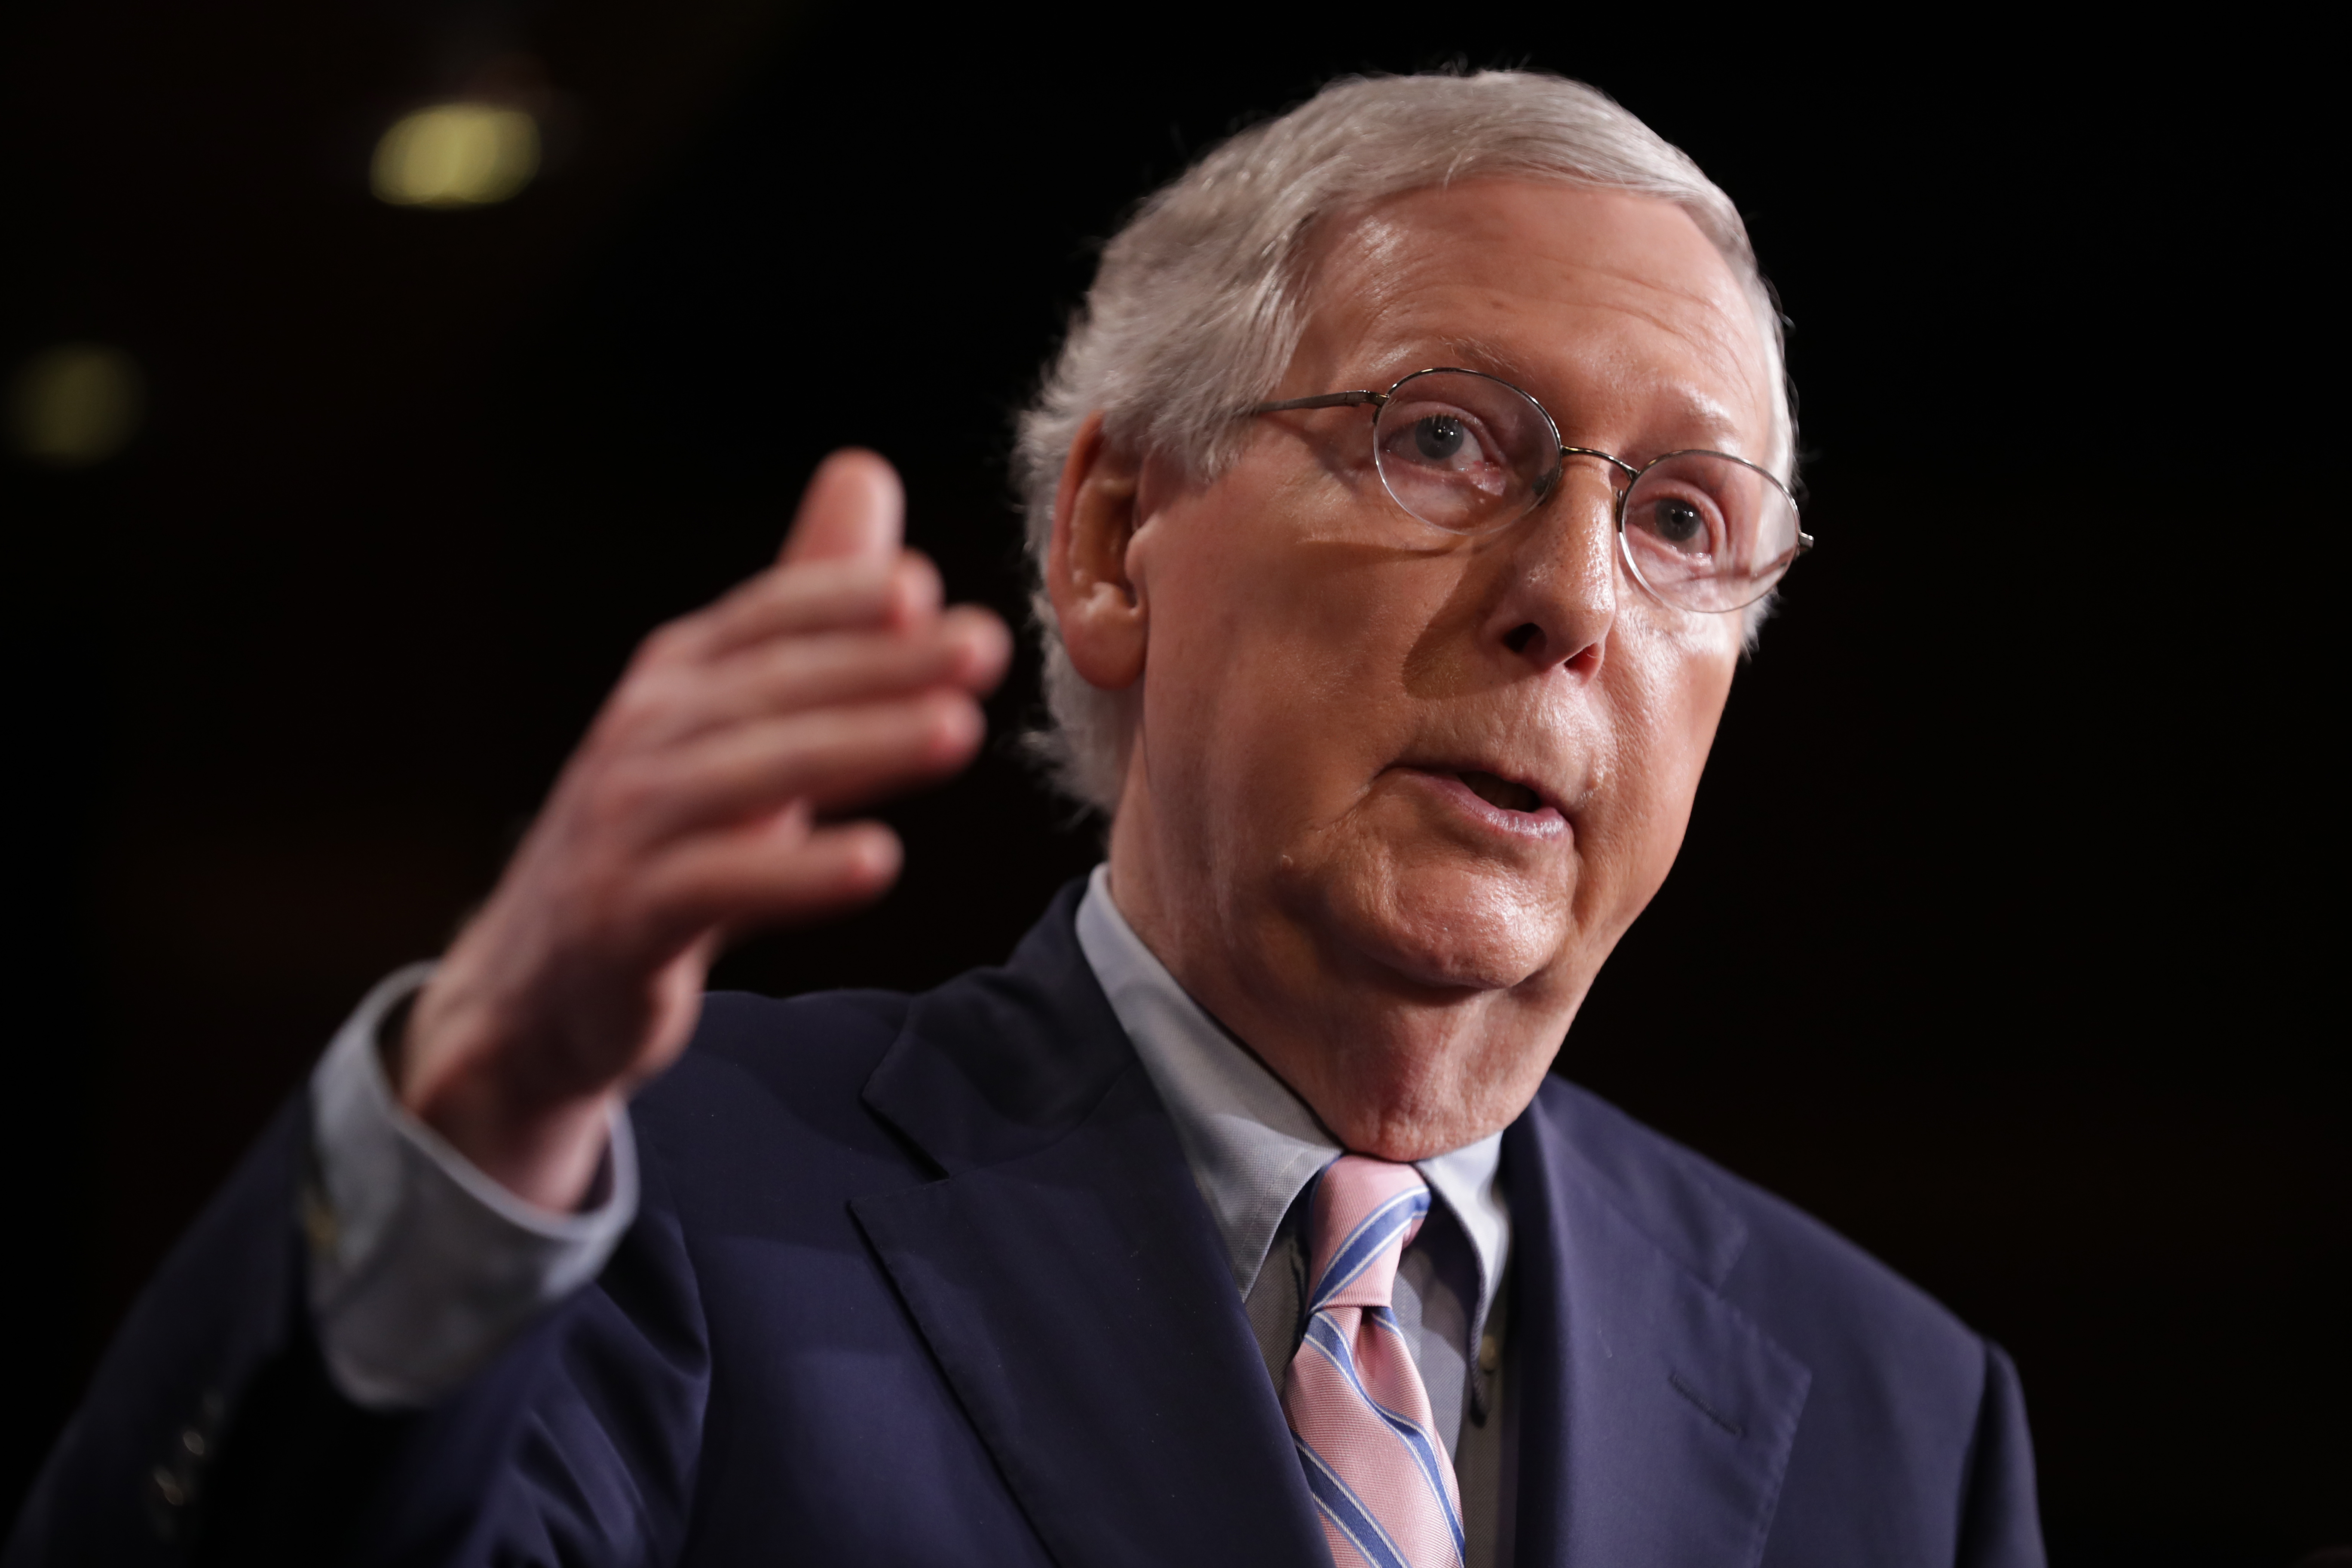 Senate Majority Leader Mitch McConnell (R-KY) talks to reporters after the Senate voted to confirm Supreme Court nominee Judge Brett Kavanaugh at the U.S. Capitol October 06, 2018 in Washington, DC. The Senate voted 50-48 to confirm Kavanaugh to replace retired Associate Justice Anthony Kennedy. (Photo by Chip Somodevilla/Getty Images)